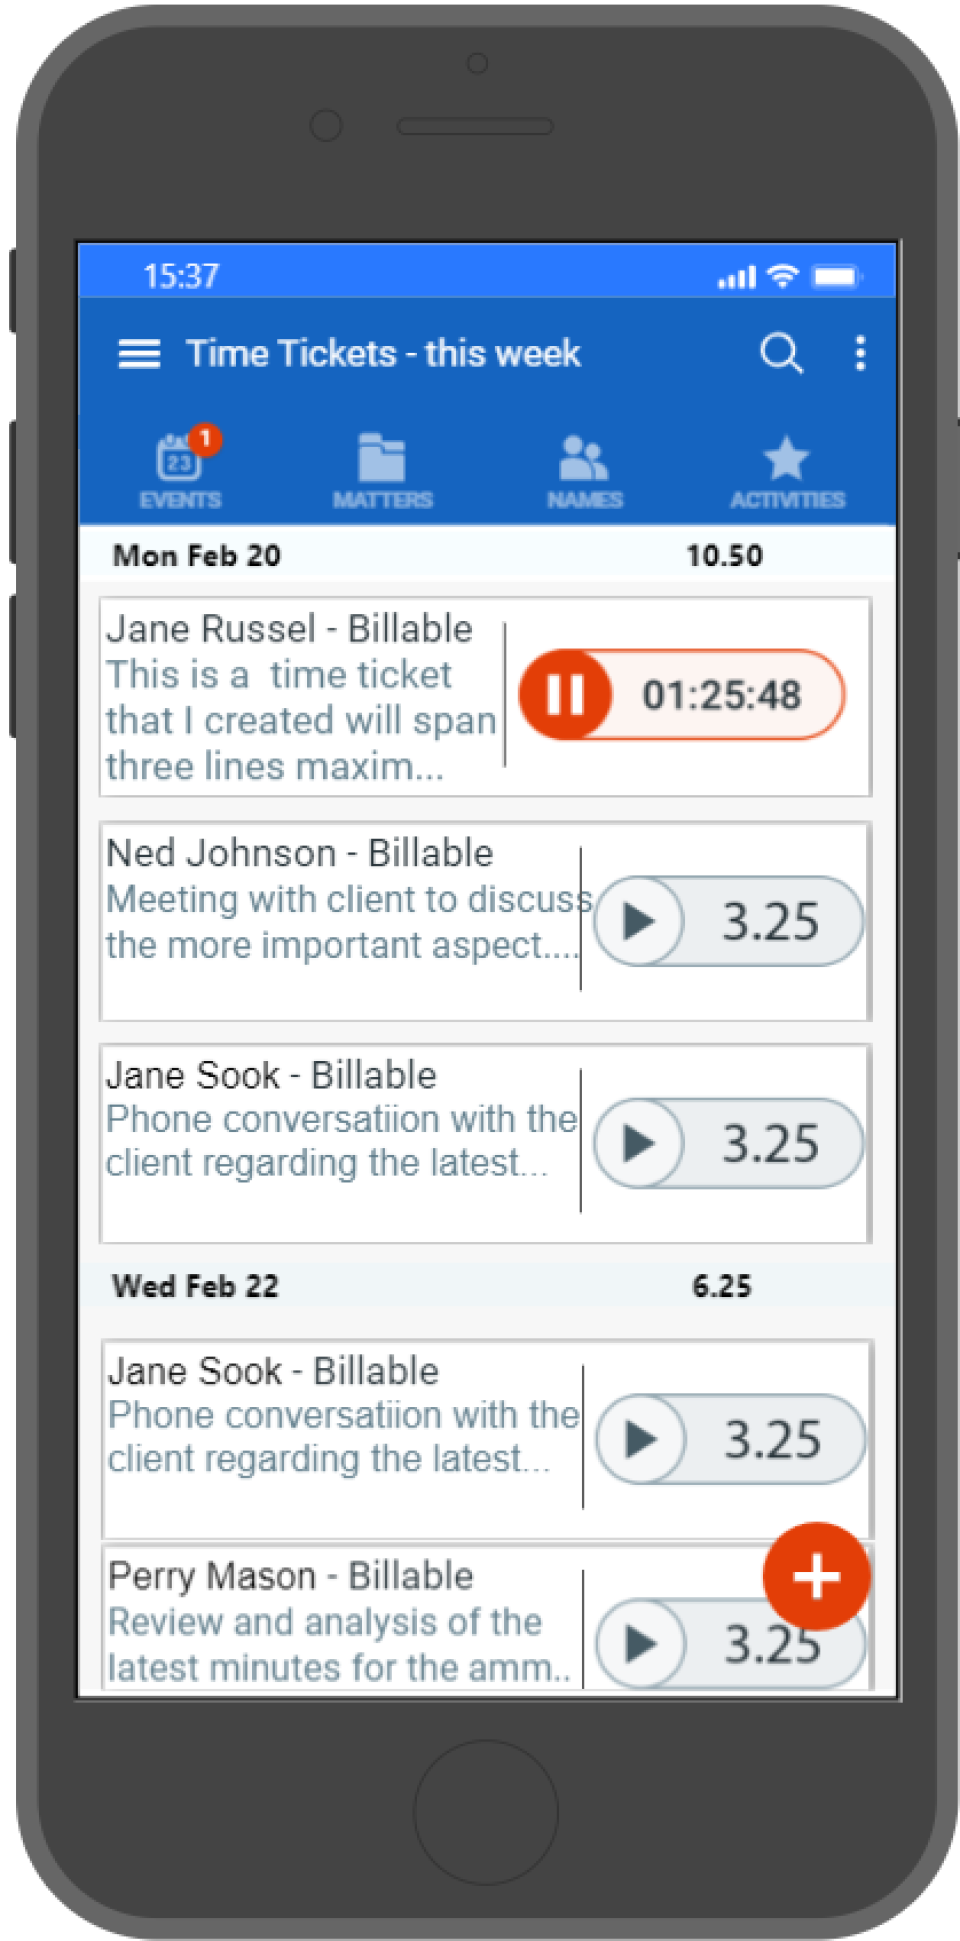 AbacusLaw Software - Mobile Time Ticket